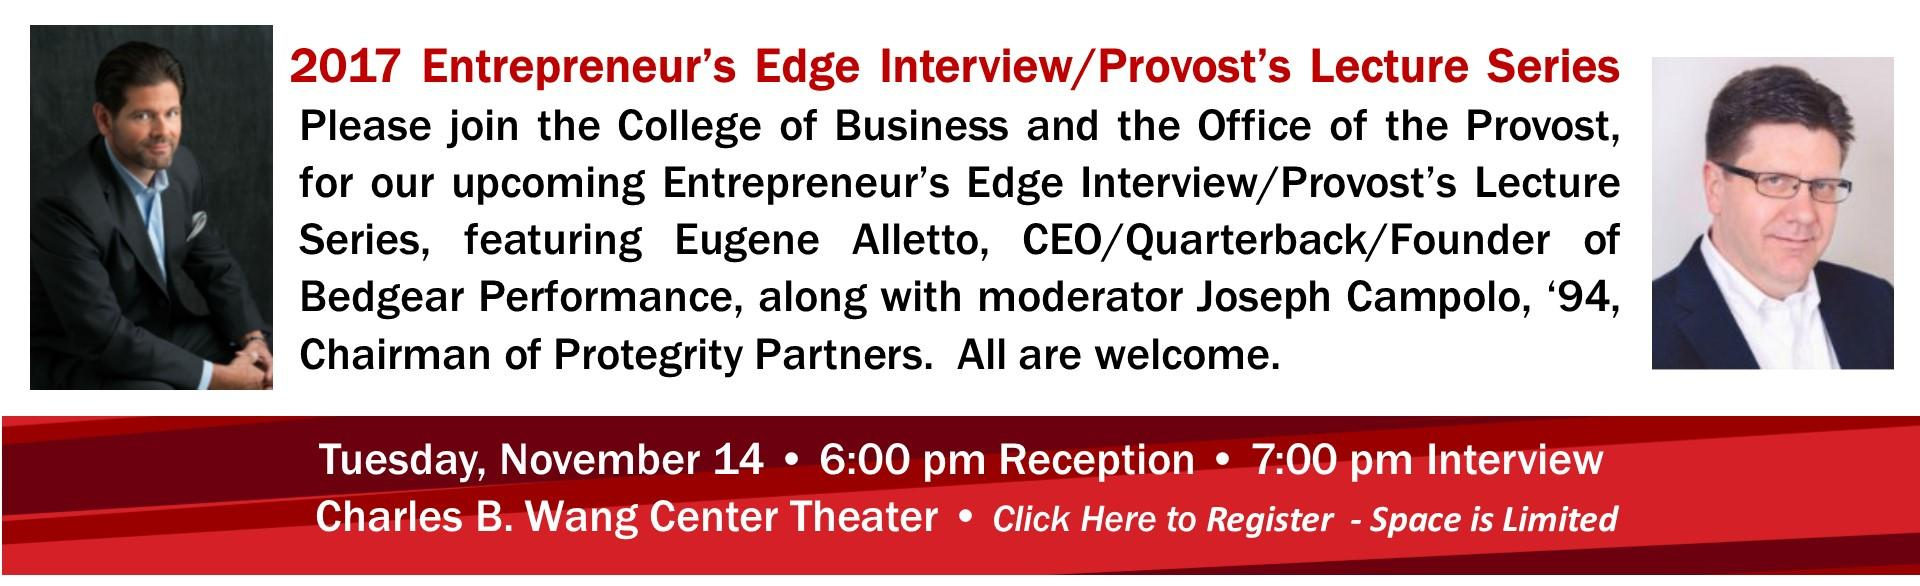 2017 Entrepreneur's Edge Interview/Provost's Lecture Series